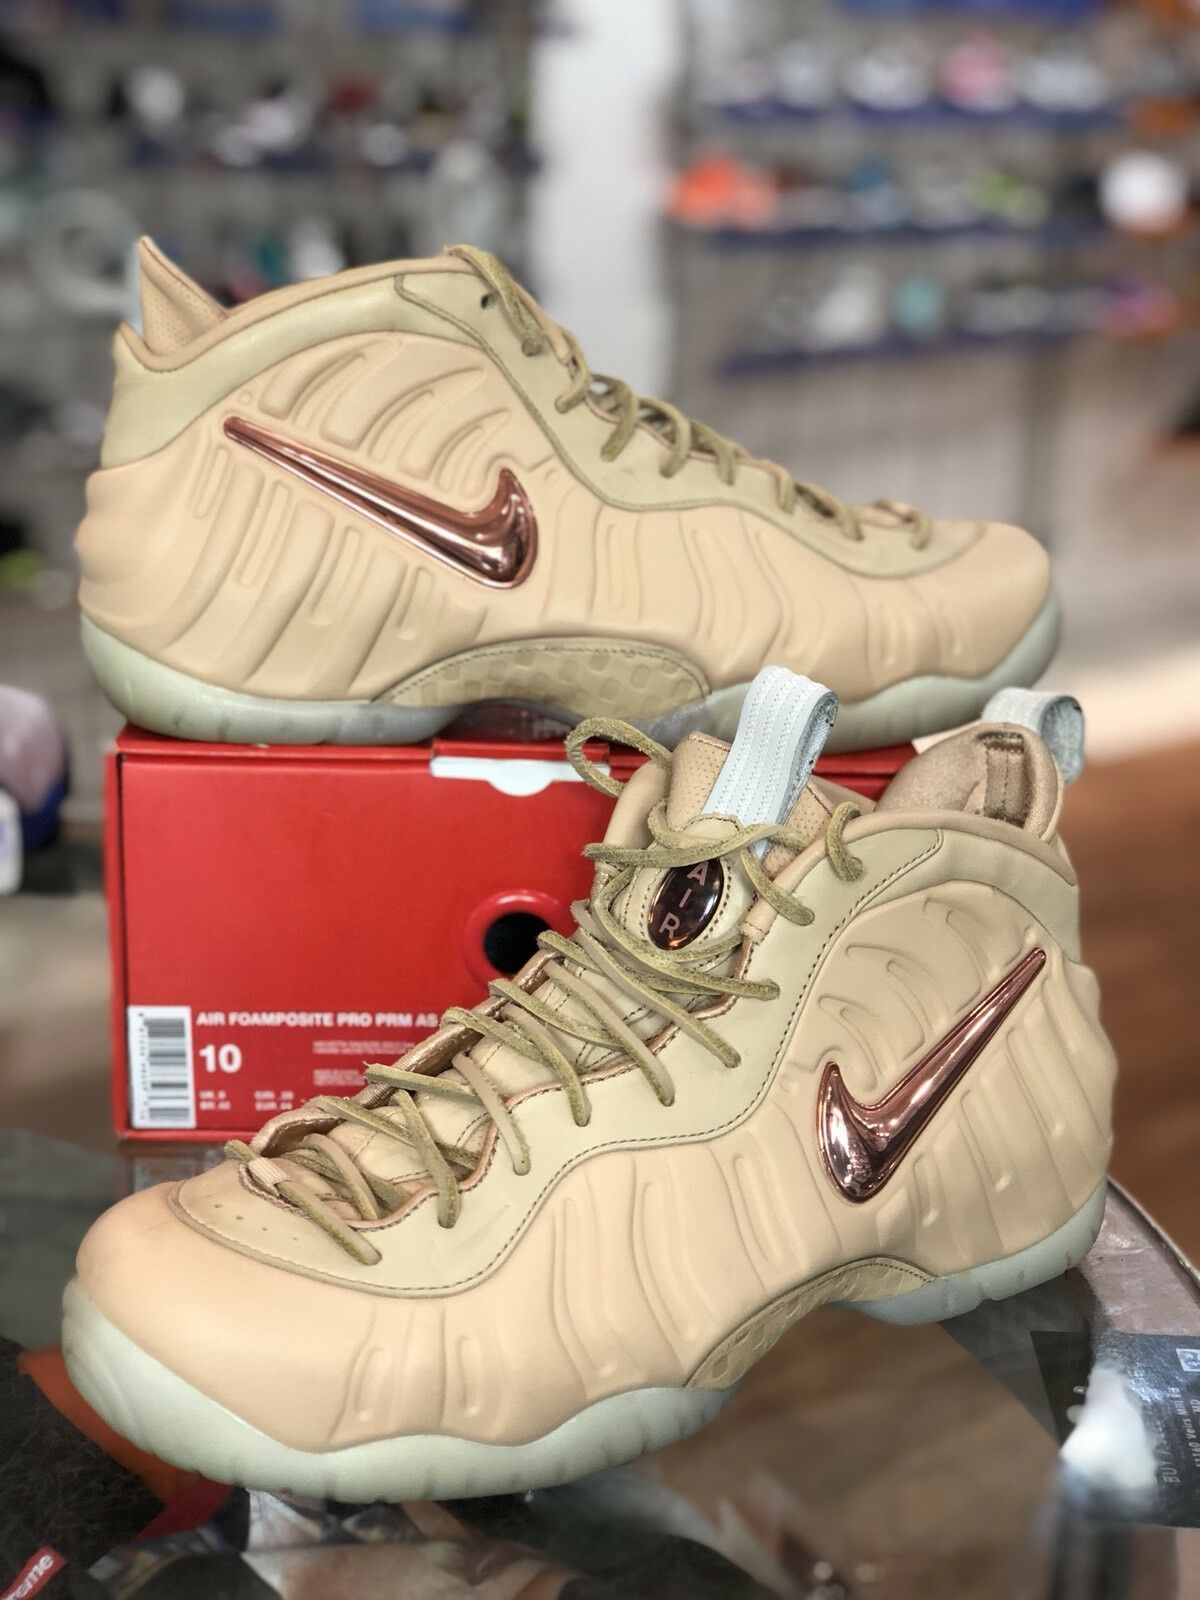 NIKE AIR FOAMPOSITE PRO PREMIUM ALL STAR QS VACHETTA TAN 920377-200 SIZE 10